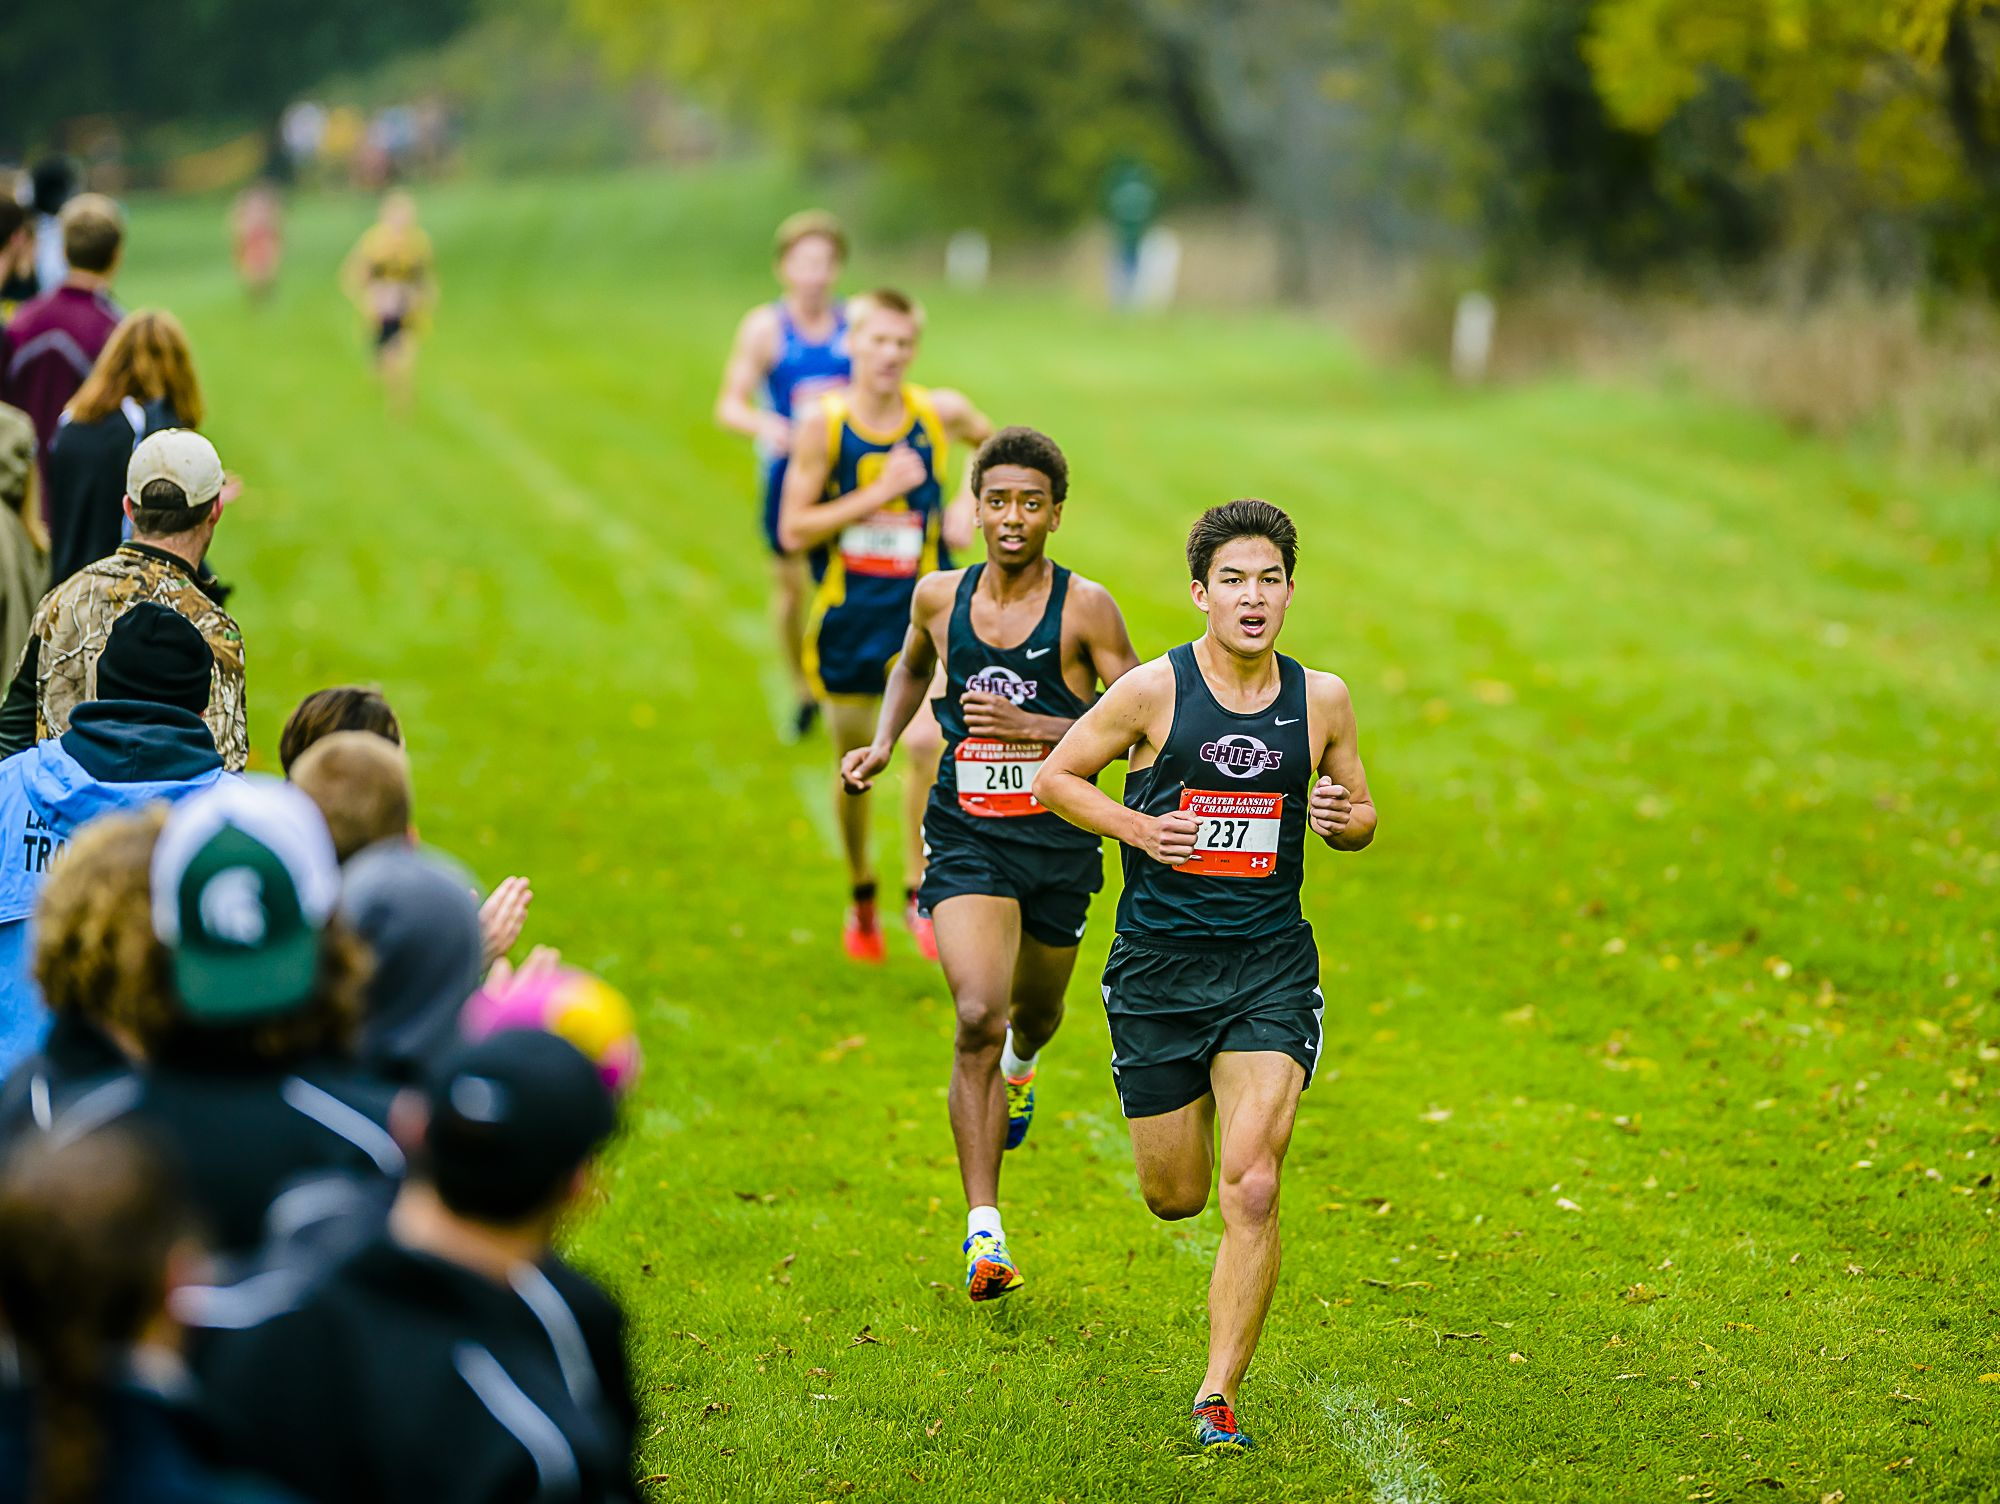 Okemos' Paul McKinley, 237, turns on the jets as he nears the finish at the Greater Lansing Cross Country Championships earlier this month.